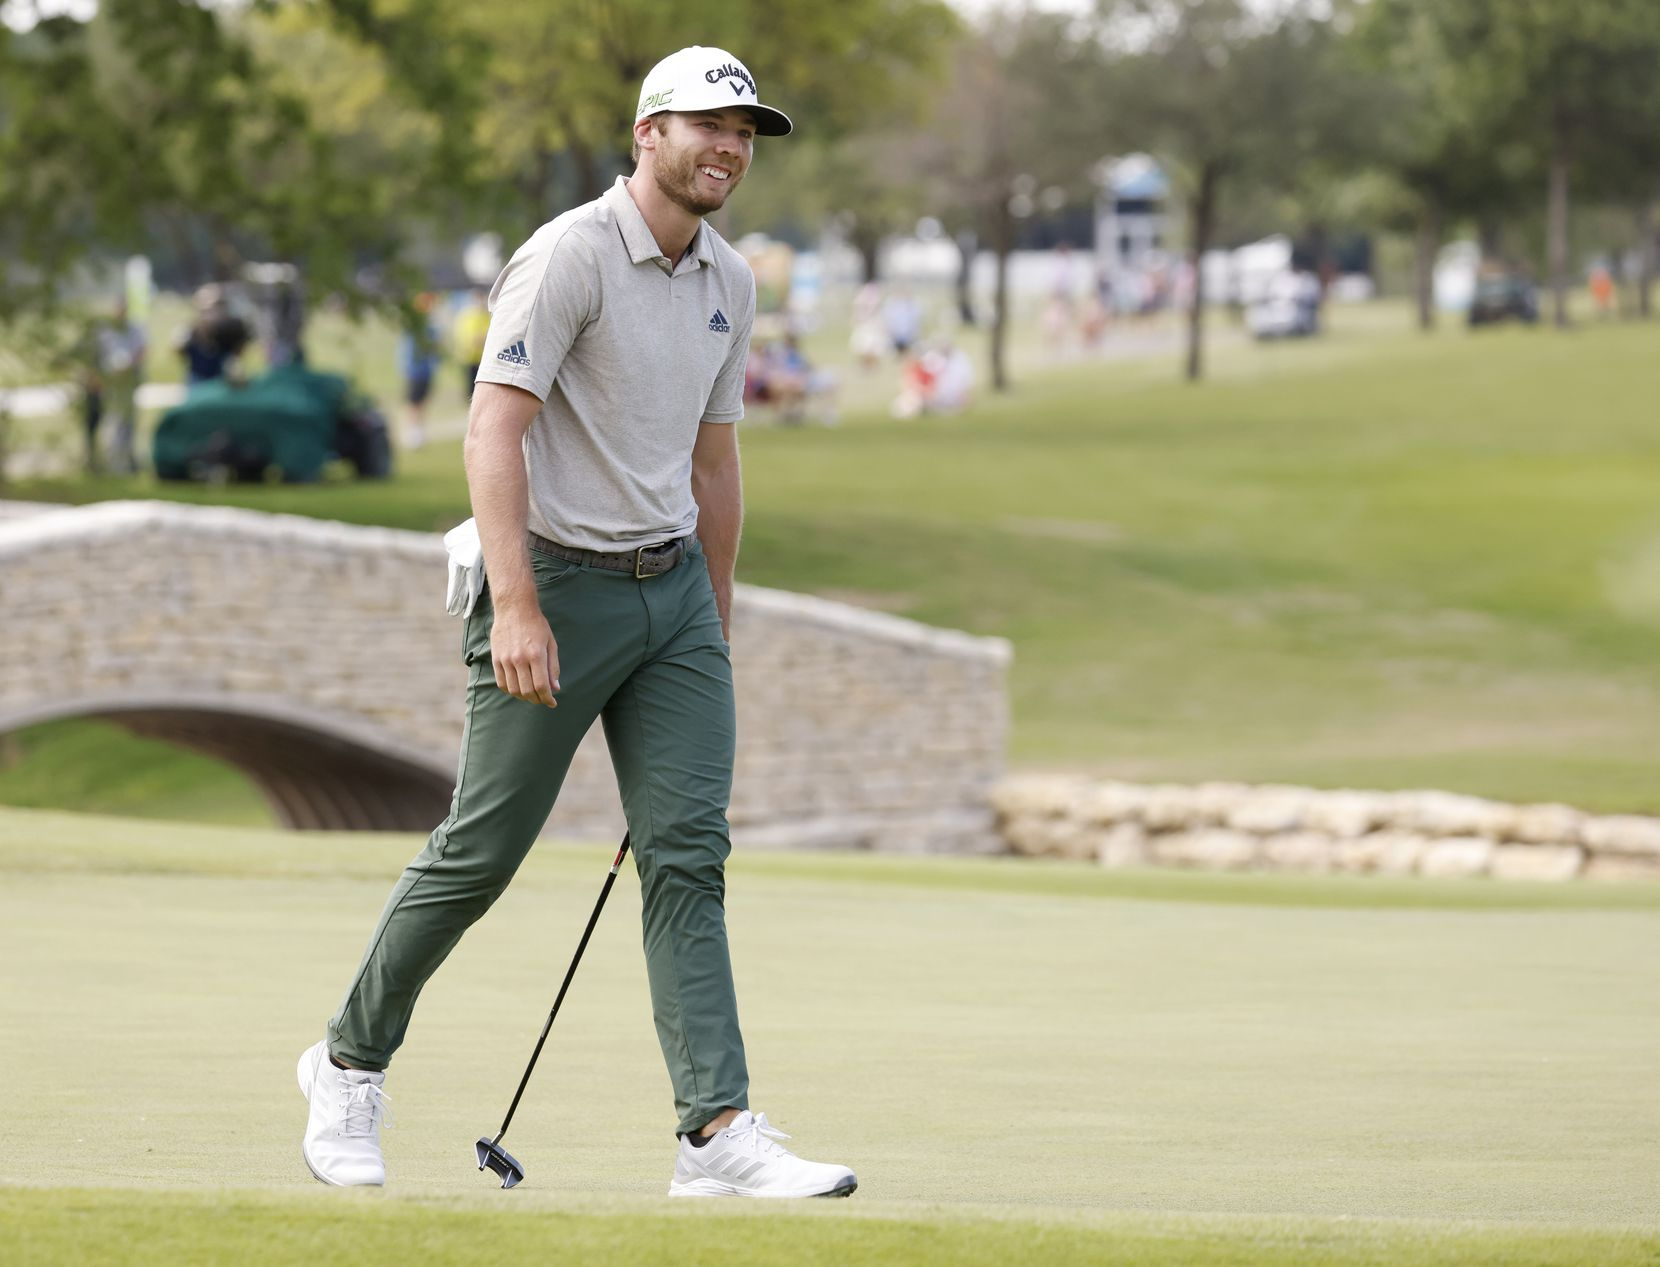 Sam Burns reacts after missing a putt for an eagle on the 18th hole during round 3 of the AT&T Byron Nelson  at TPC Craig Ranch on Saturday, May 15, 2021 in McKinney, Texas. Burns scored a birdie on the 18th hole to put him in the lead with -20. (Vernon Bryant/The Dallas Morning News)